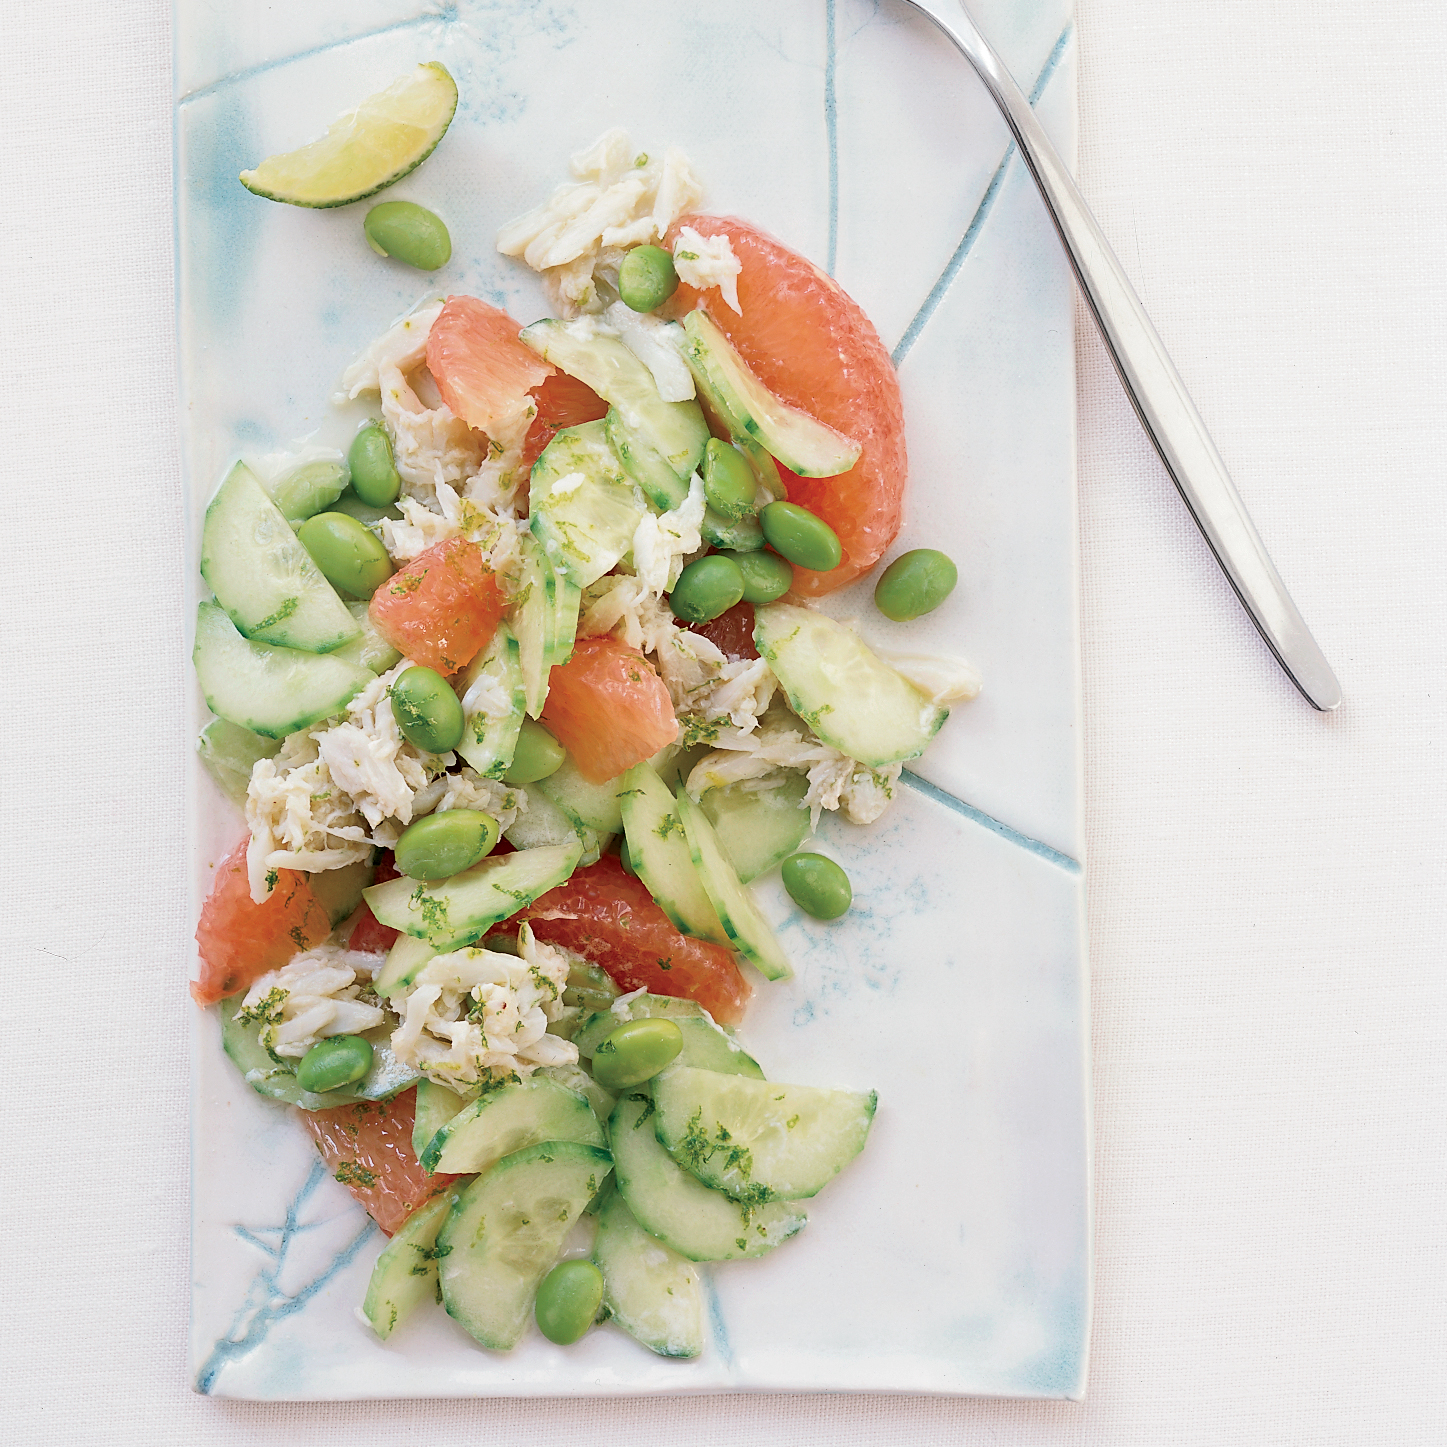 Cucumber-Grapefruit Crab Salad